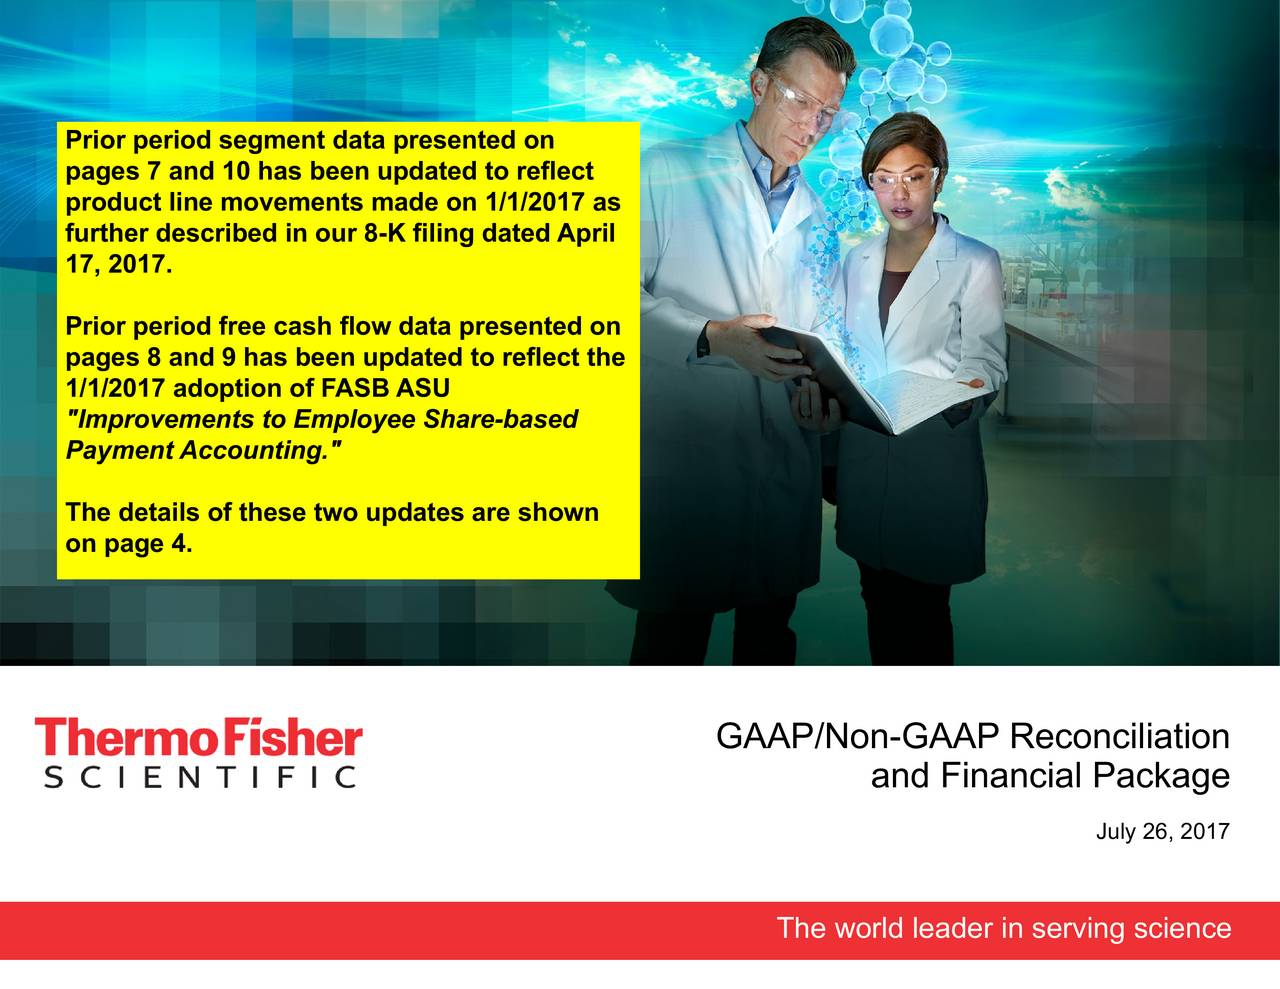 Thermo fisher employee stock options